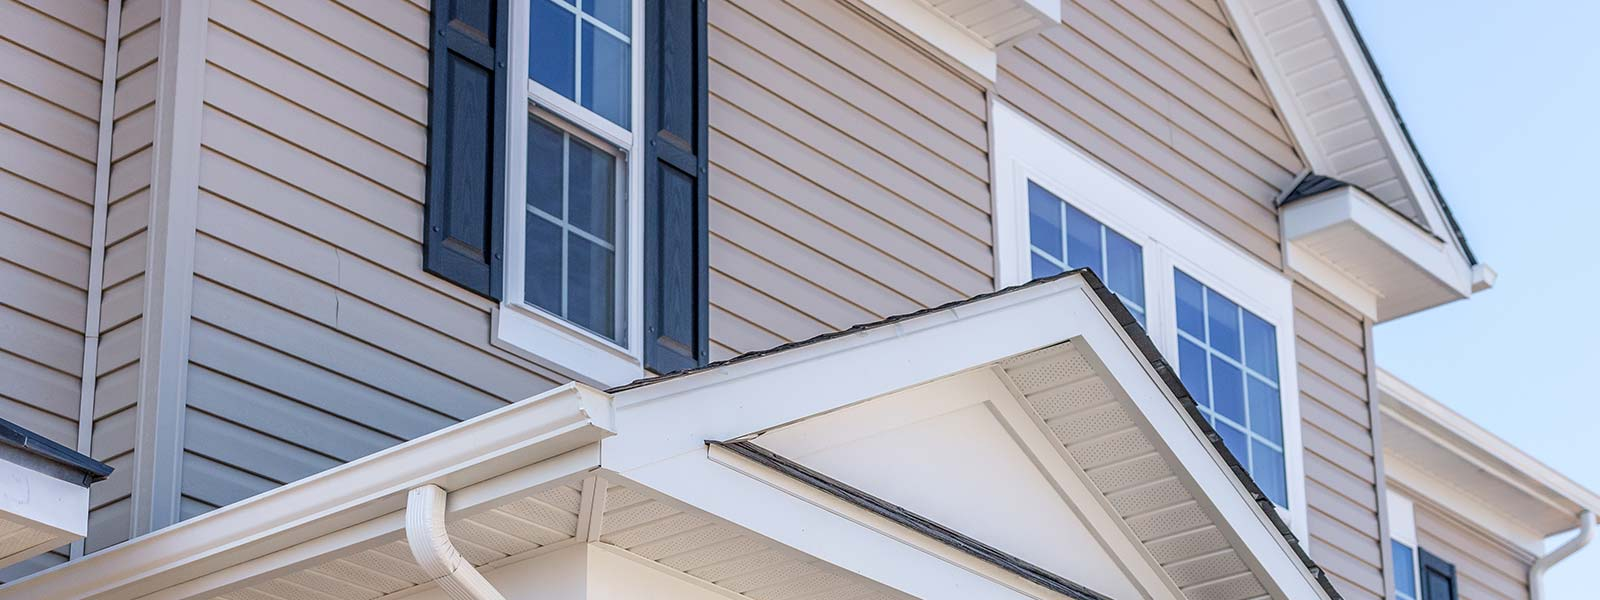 denver siding repair